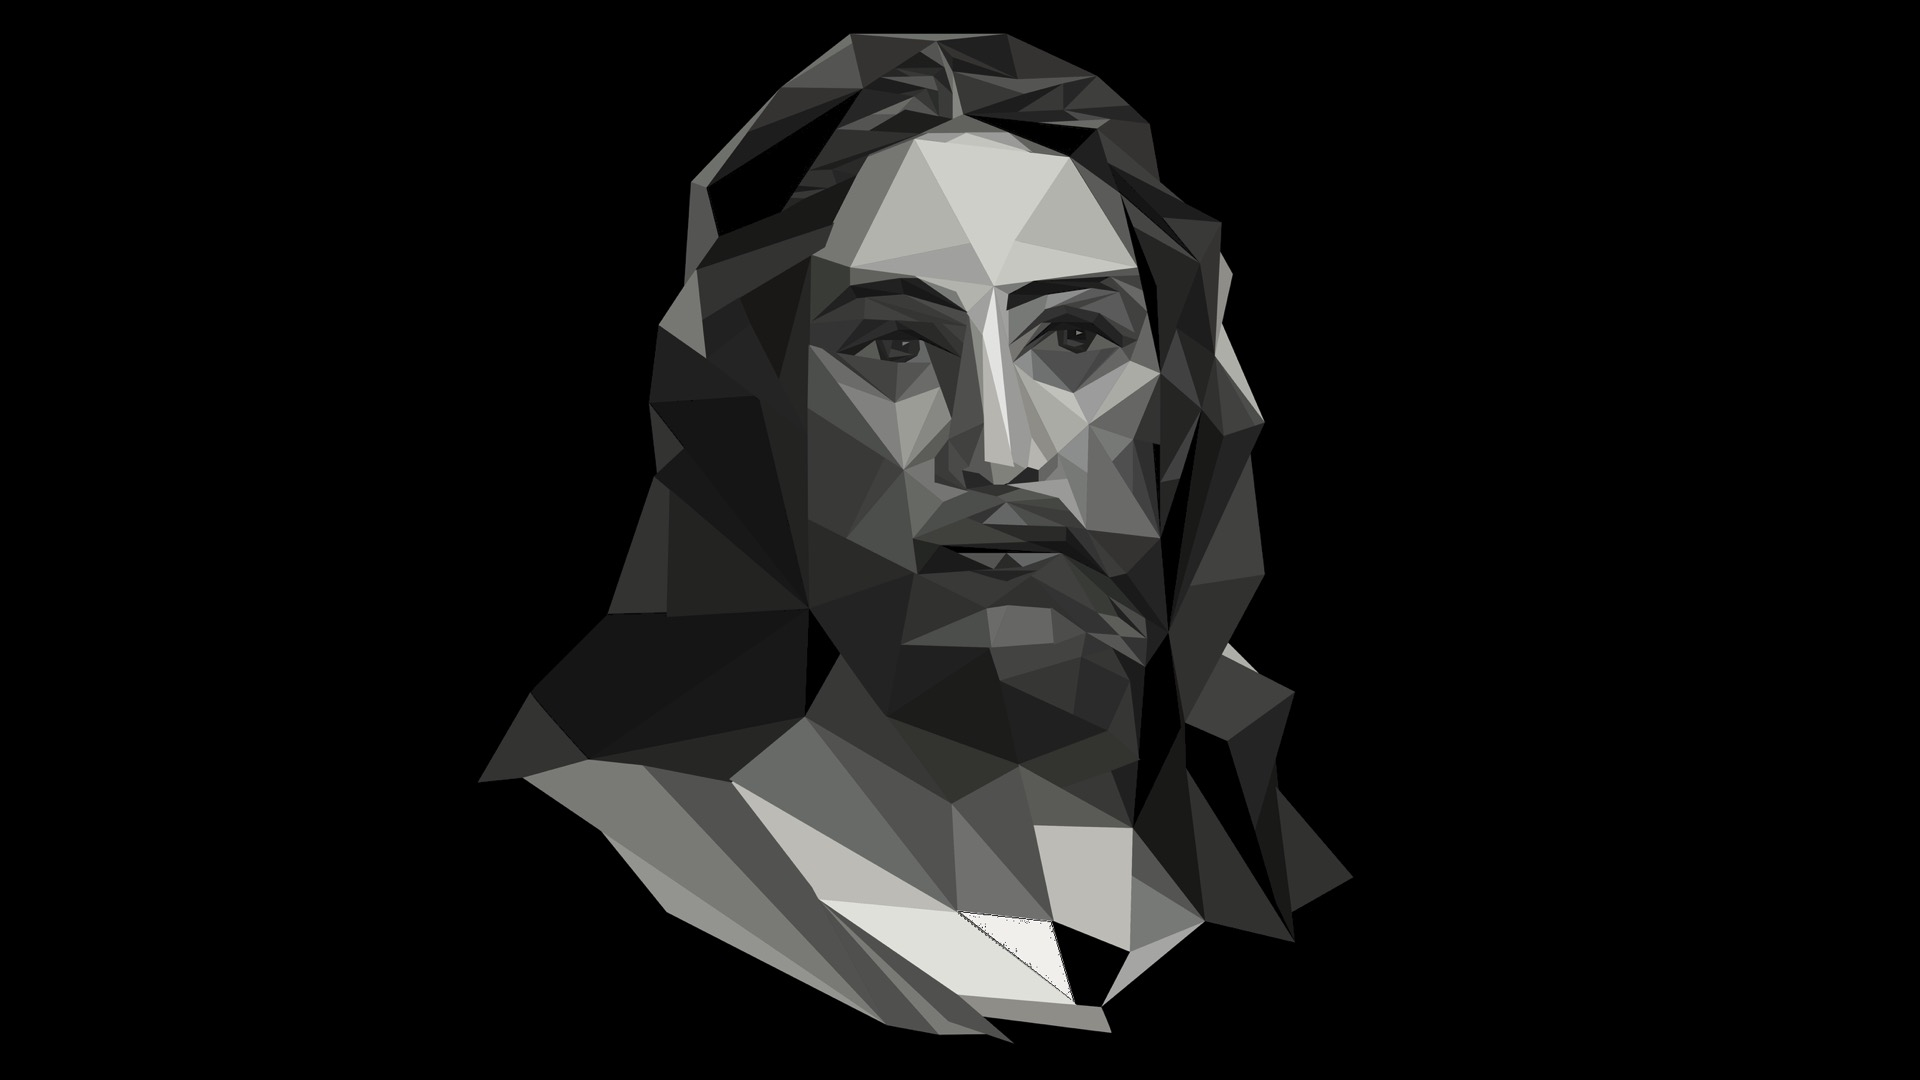 What Did Jesus Do? - (February 25, 2018 - March 25, 2018)